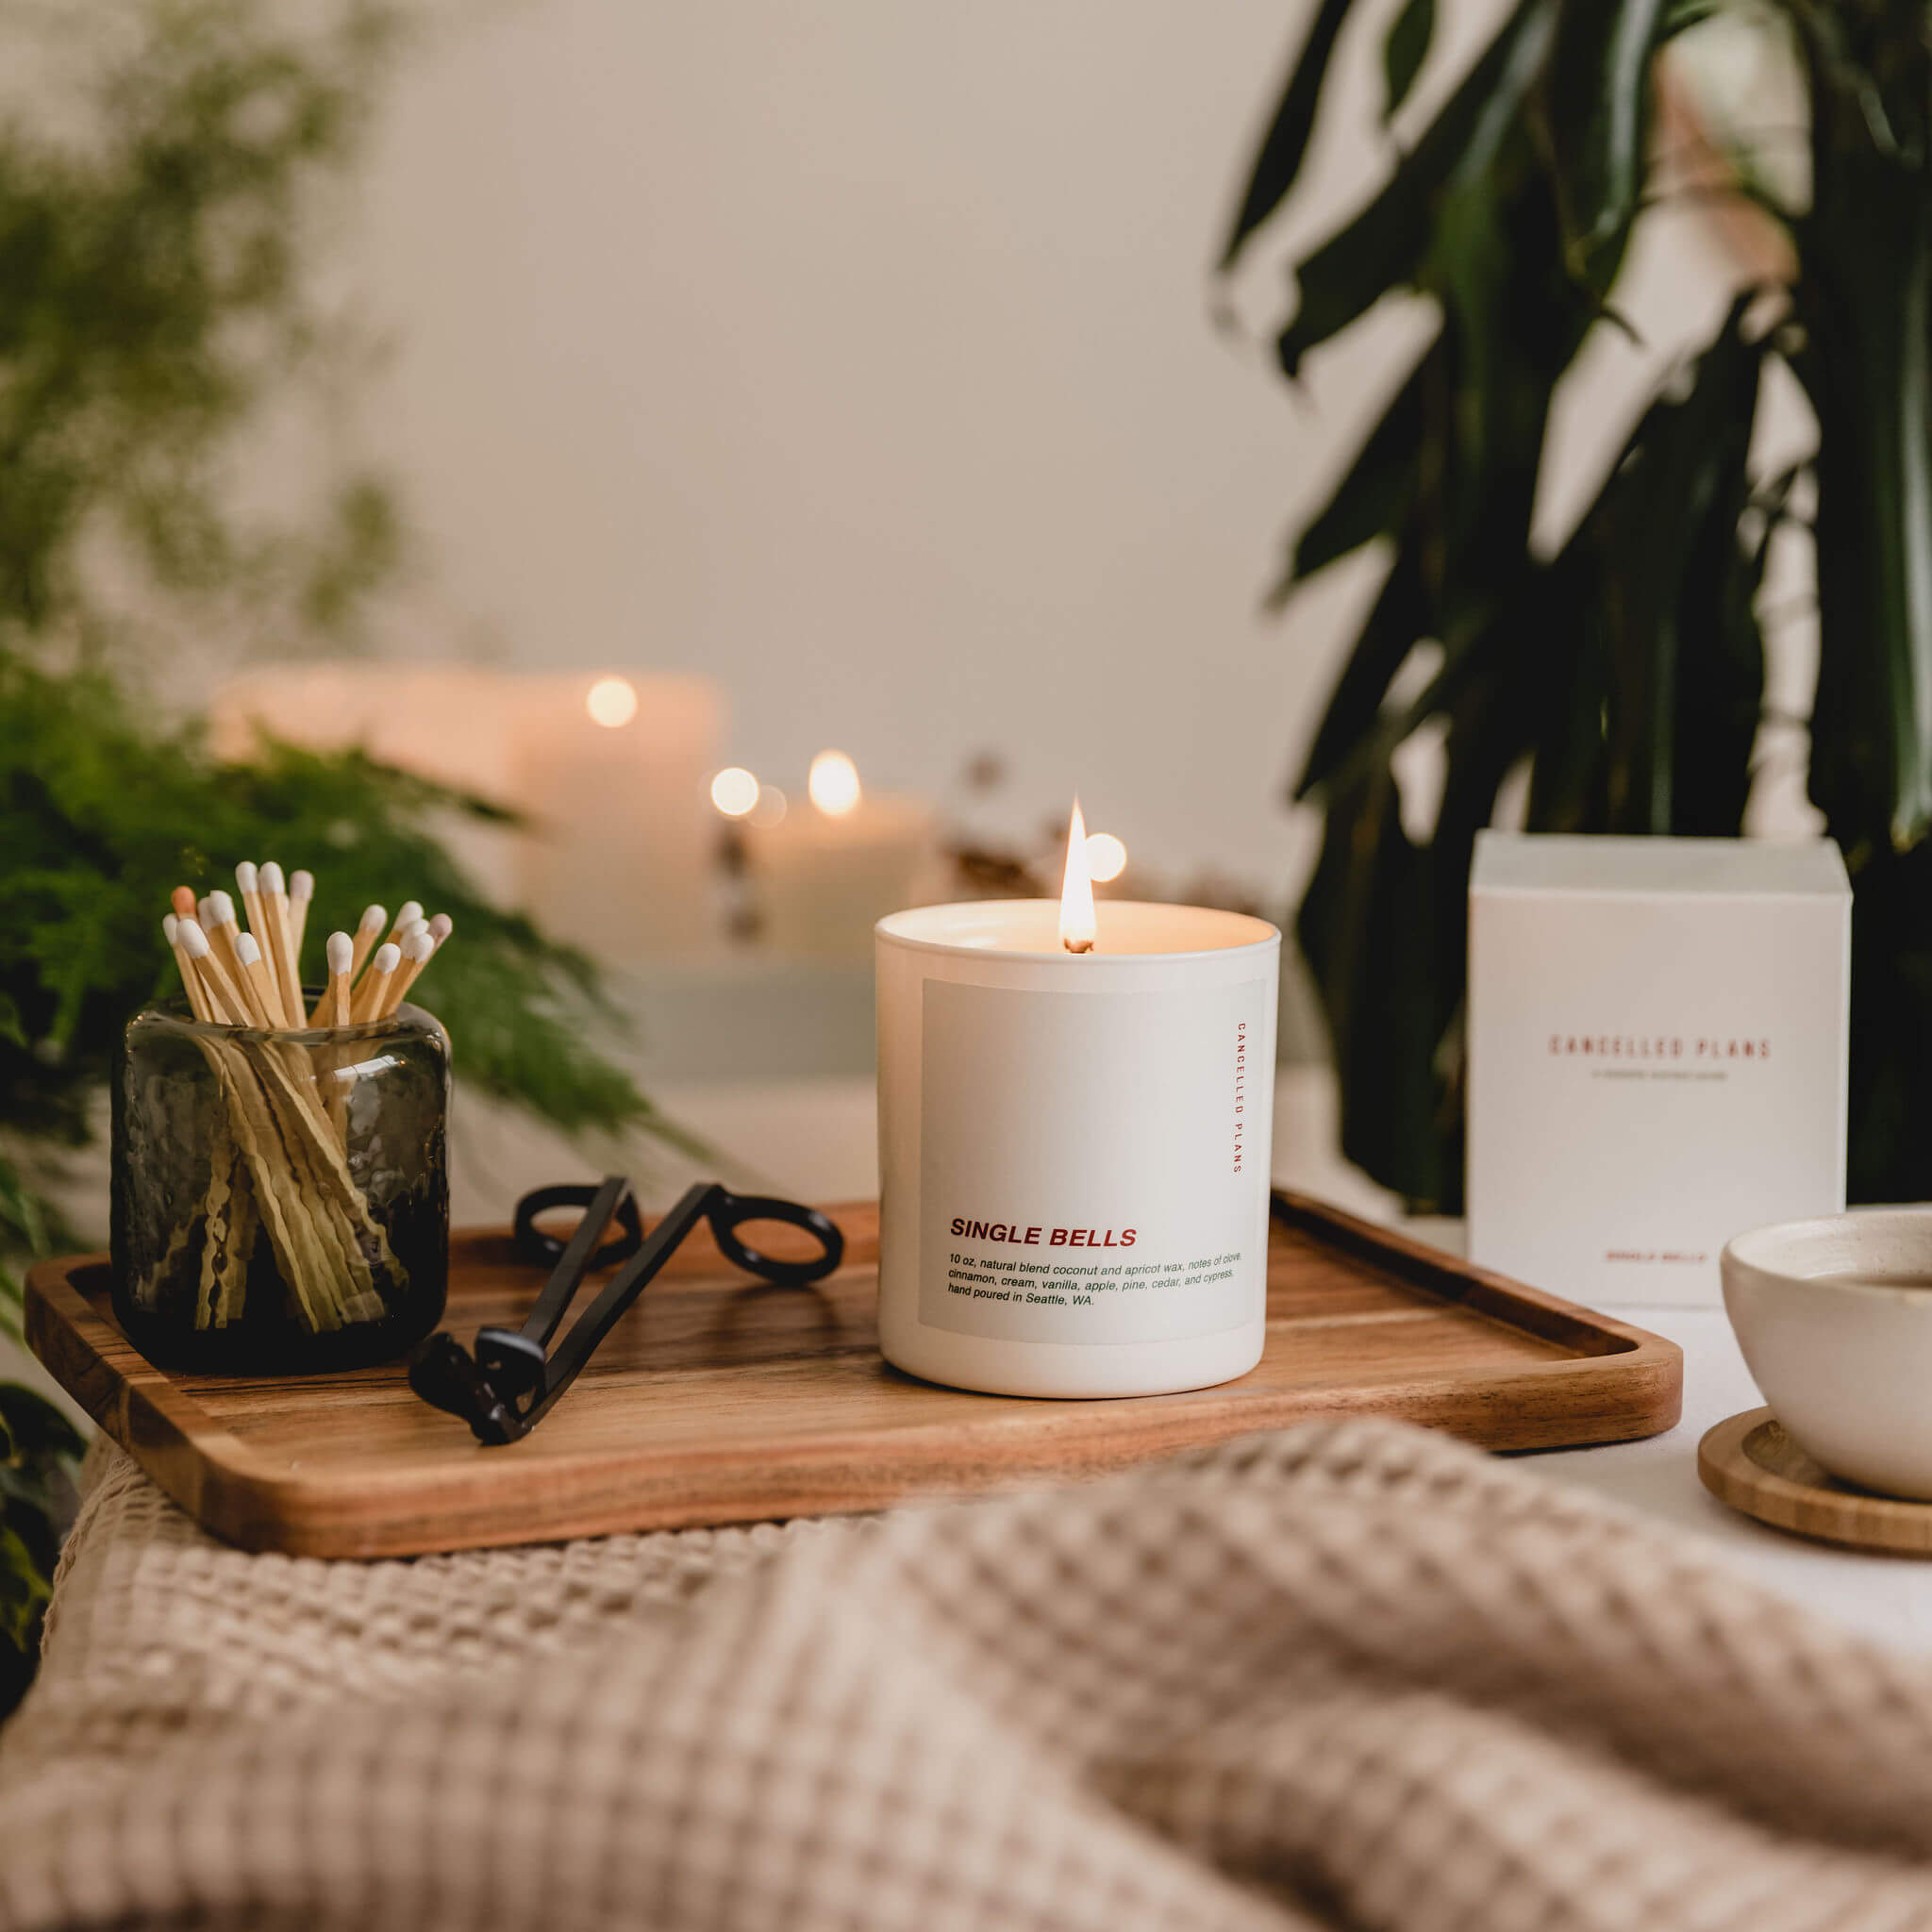 Single Bells Scented Candle by Cancelled Plans